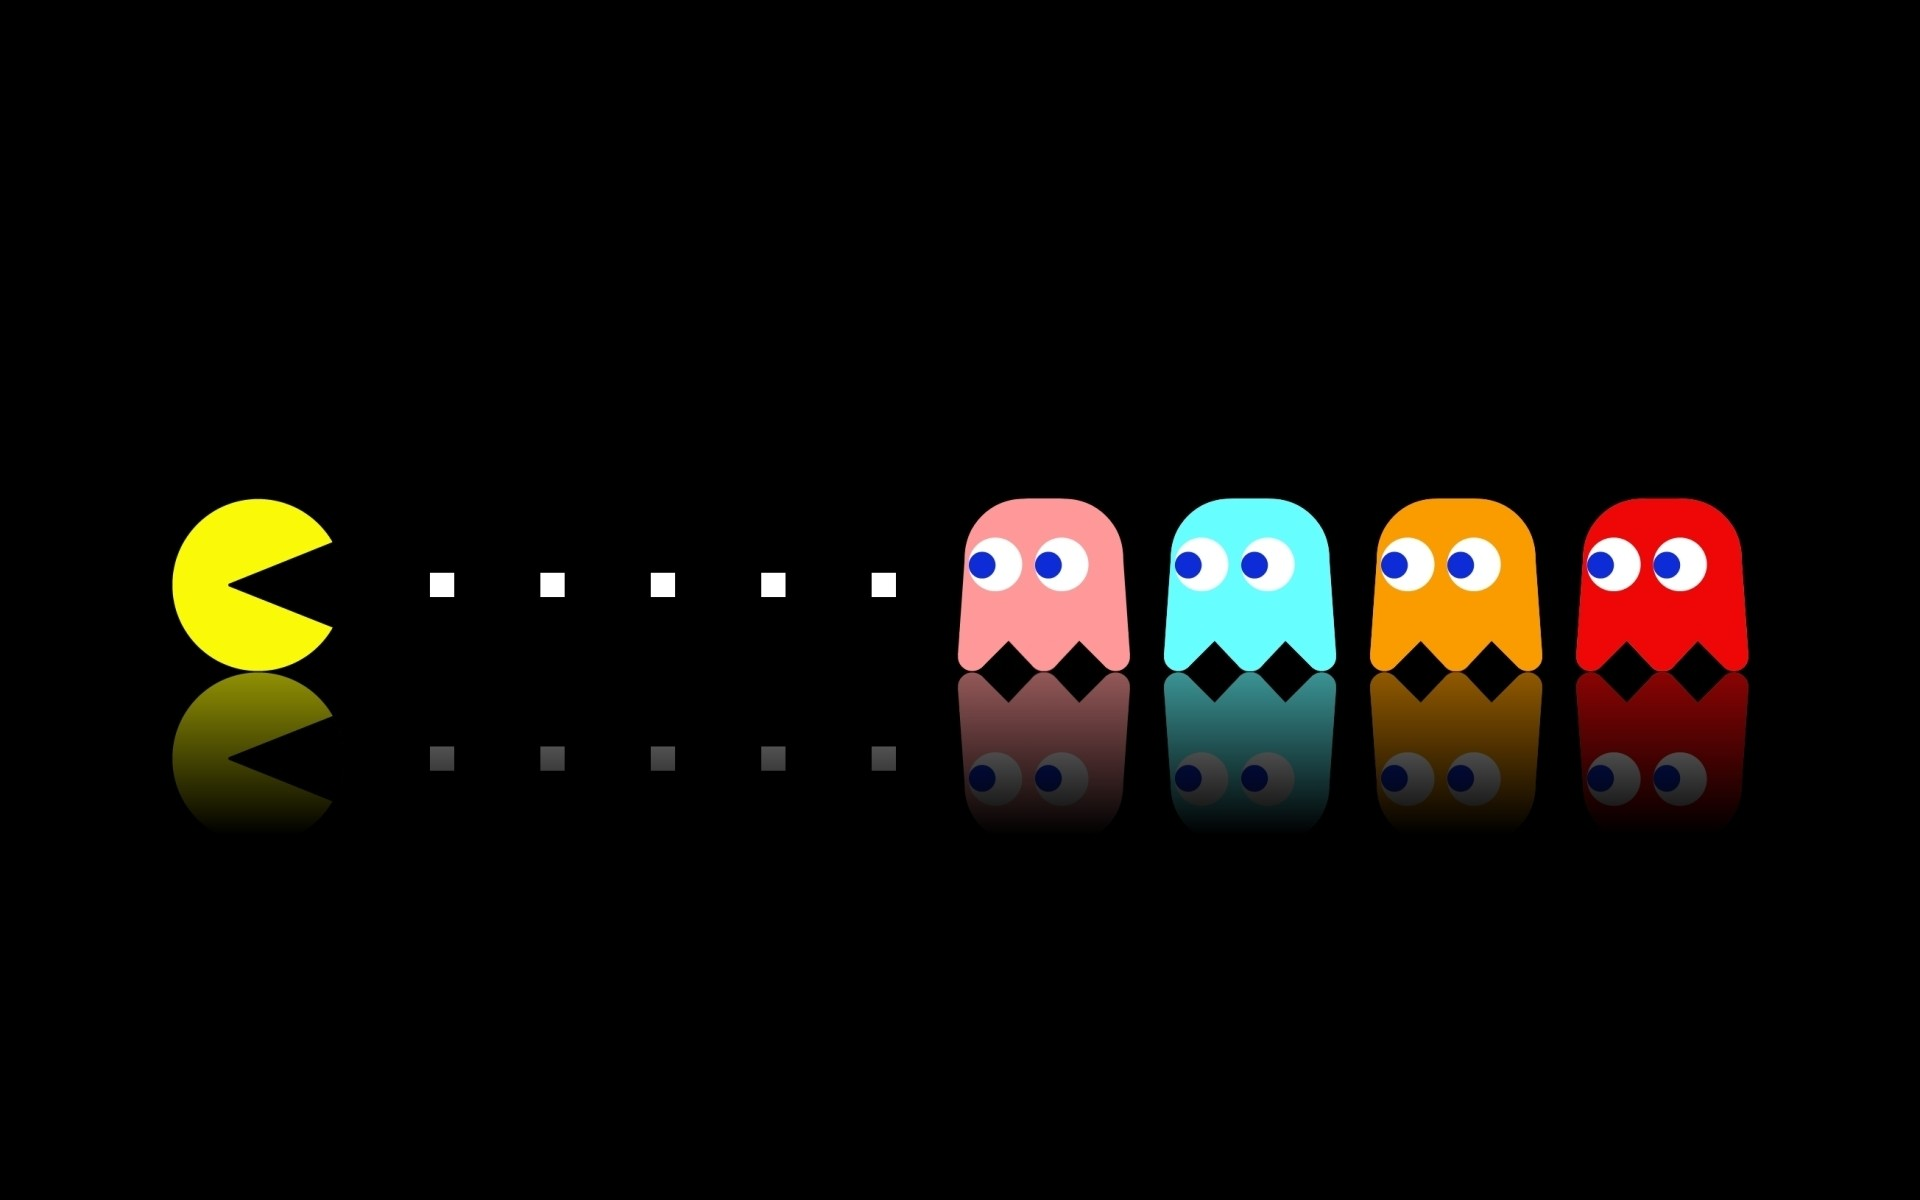 Explore Pac Man, Arcade Games, and more! wallpapers